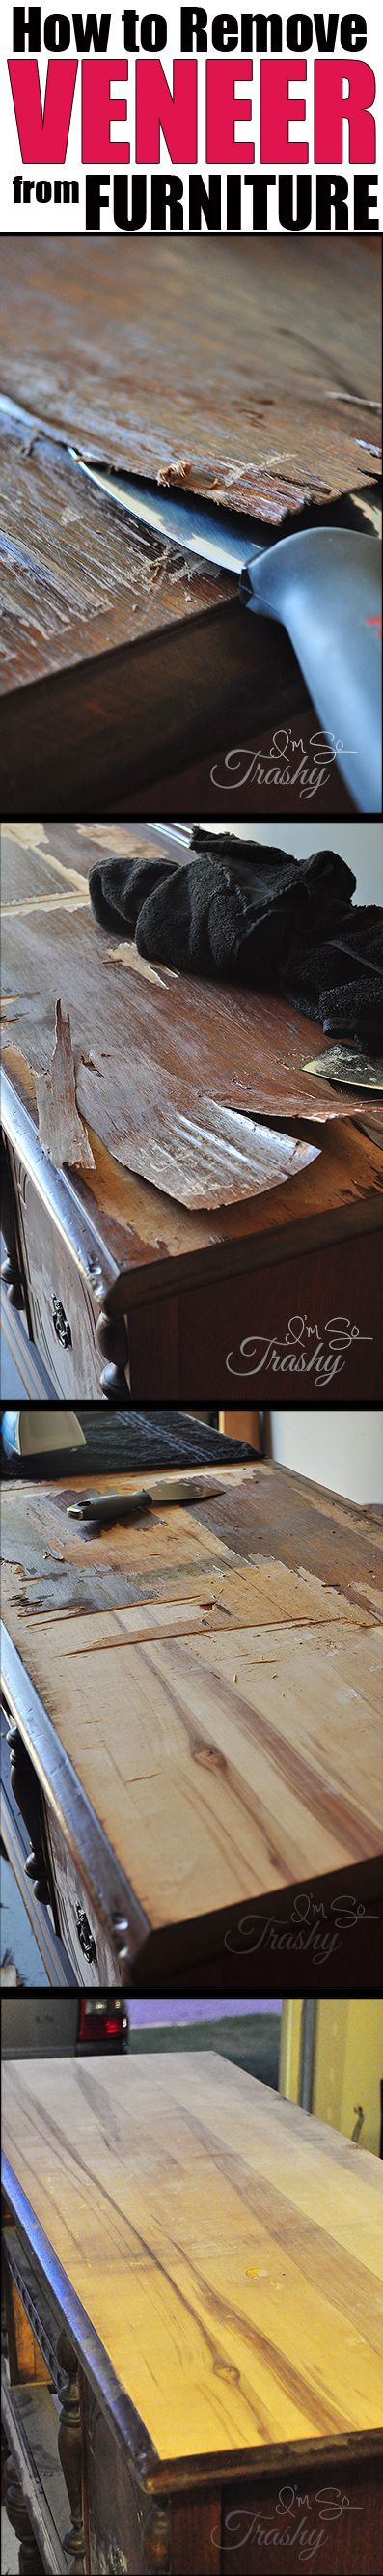 How to Remove Veneer from Furniture. Safe, effective and so very easy!